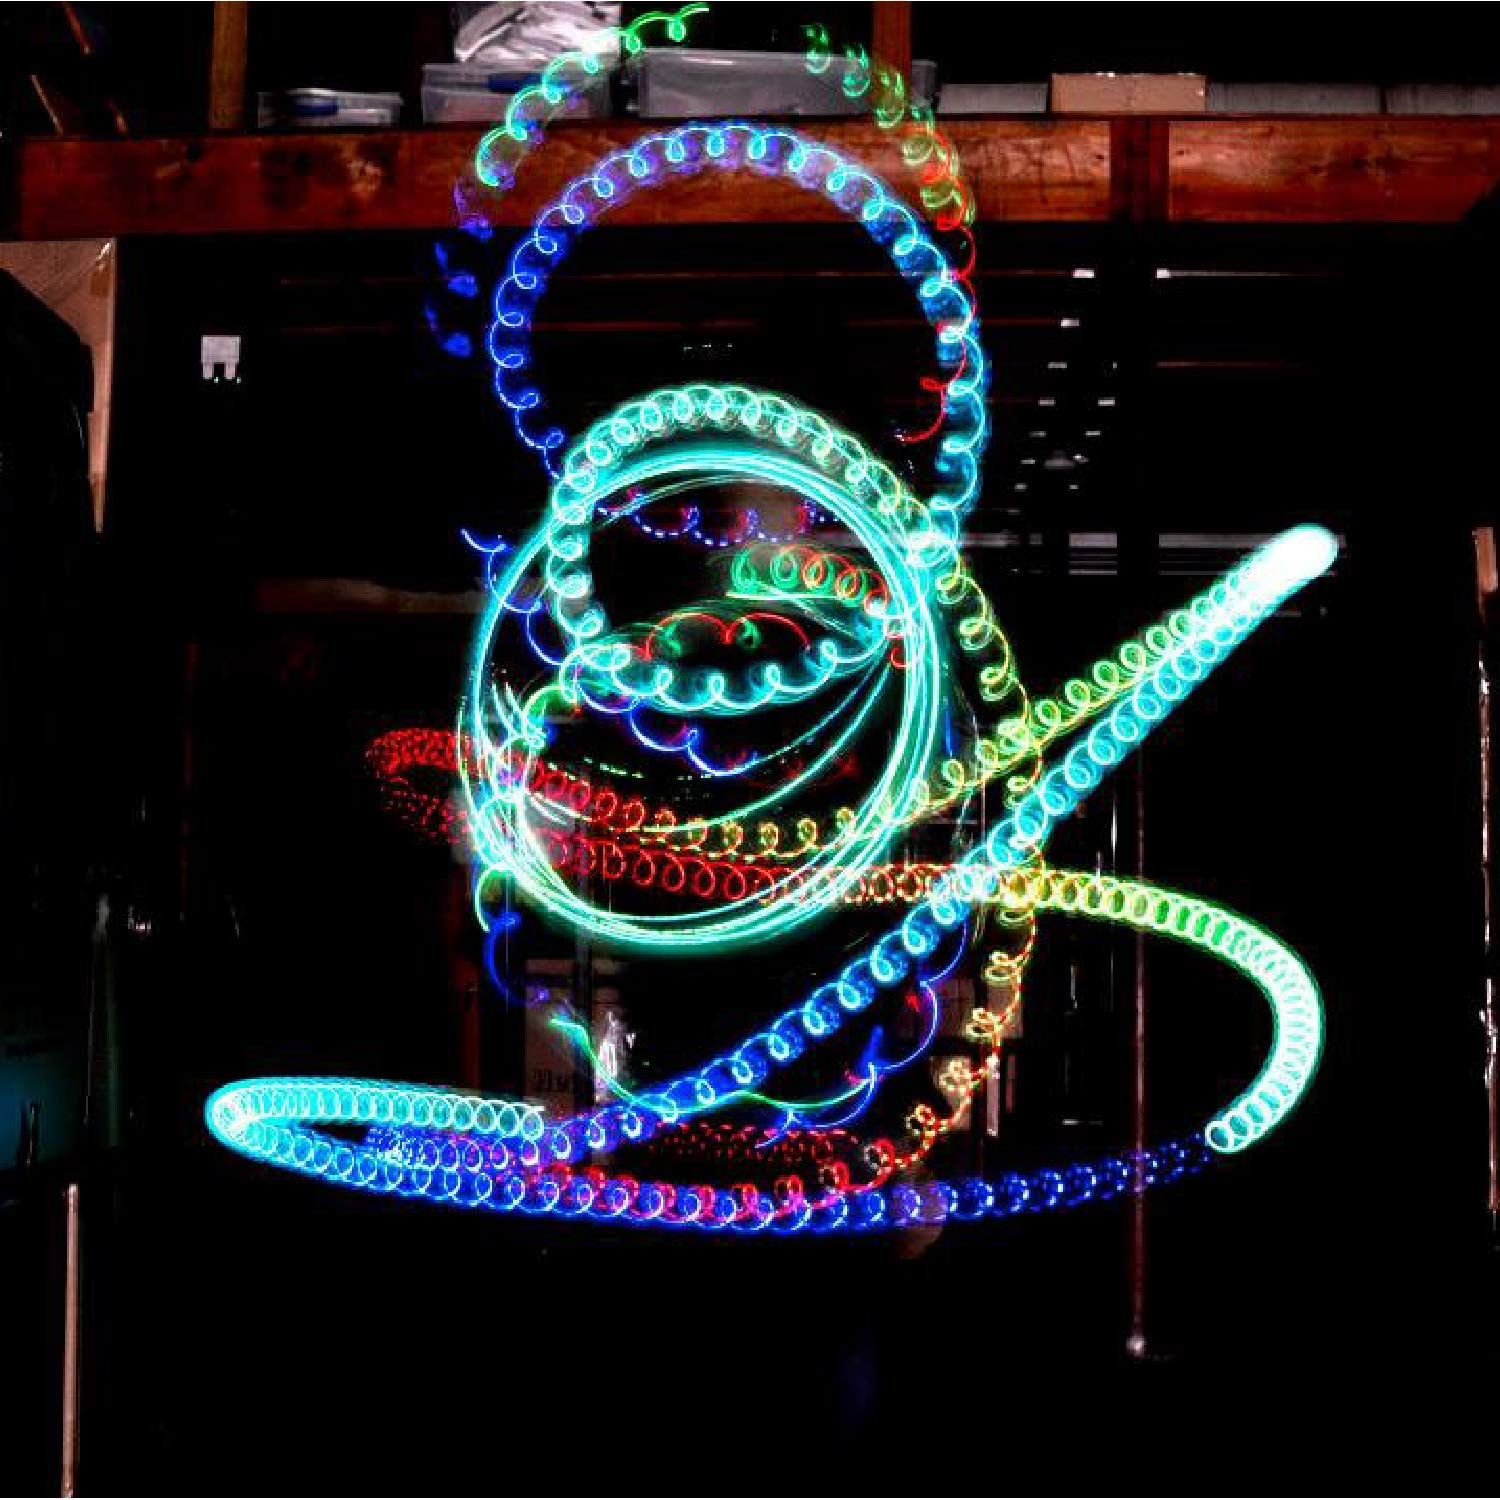 Yomega Spectrum – Light up Fireball Transaxle YoYo with LED Lights for Intermediate, Advanced and Pro Level String Trick Play + Extra 2 Strings & 3 Month Warranty (Blue) by Yomega (Image #6)